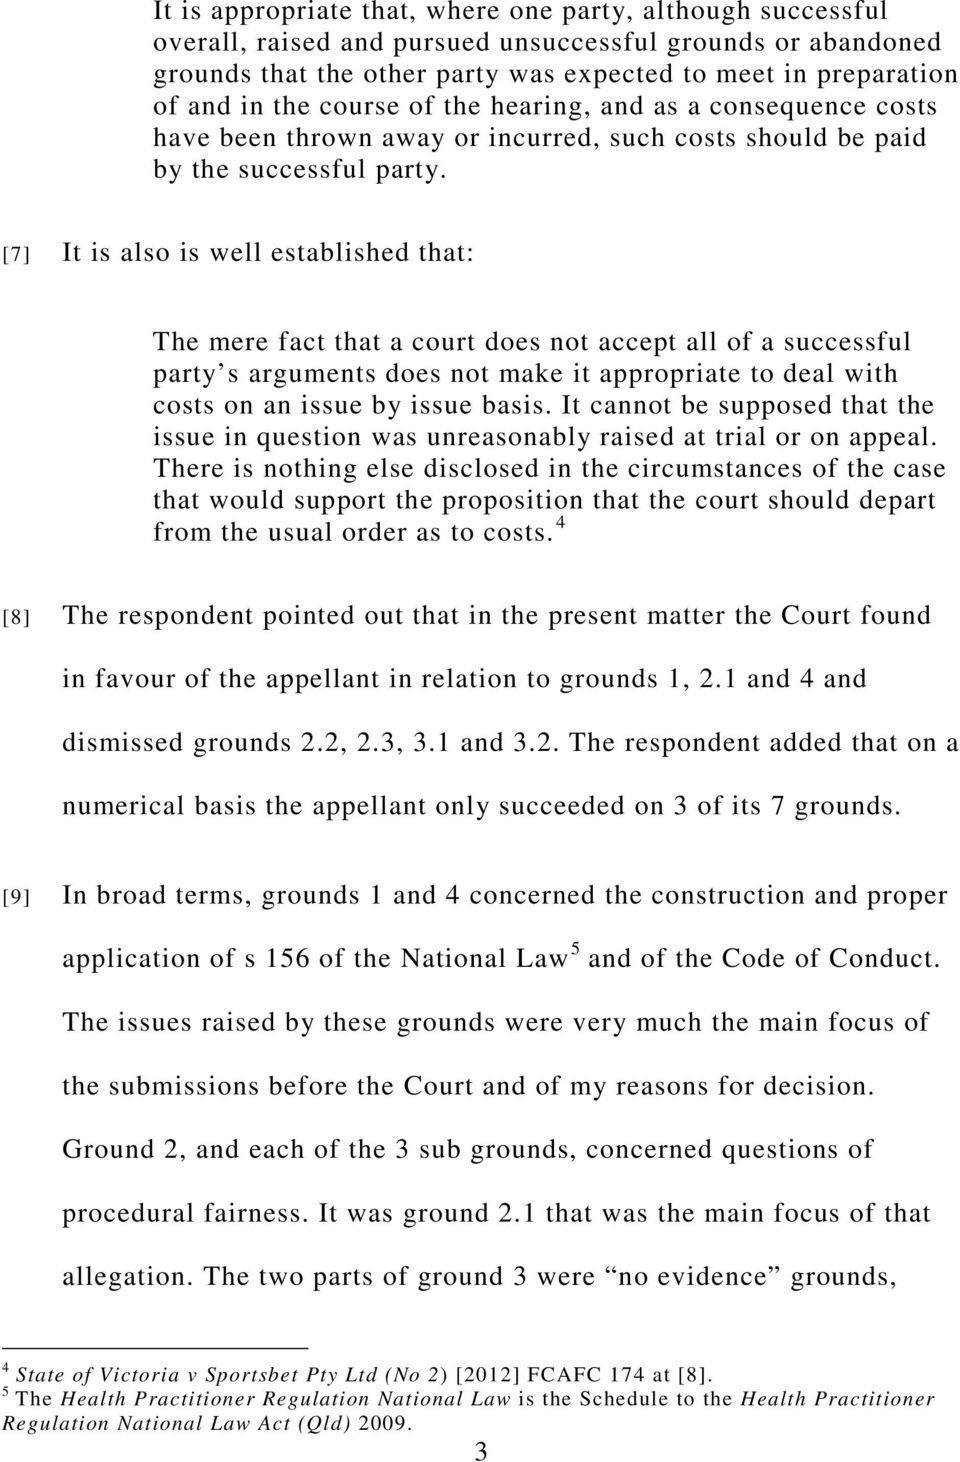 [7] It is also is well established that: The mere fact that a court does not accept all of a successful party s arguments does not make it appropriate to deal with costs on an issue by issue basis.